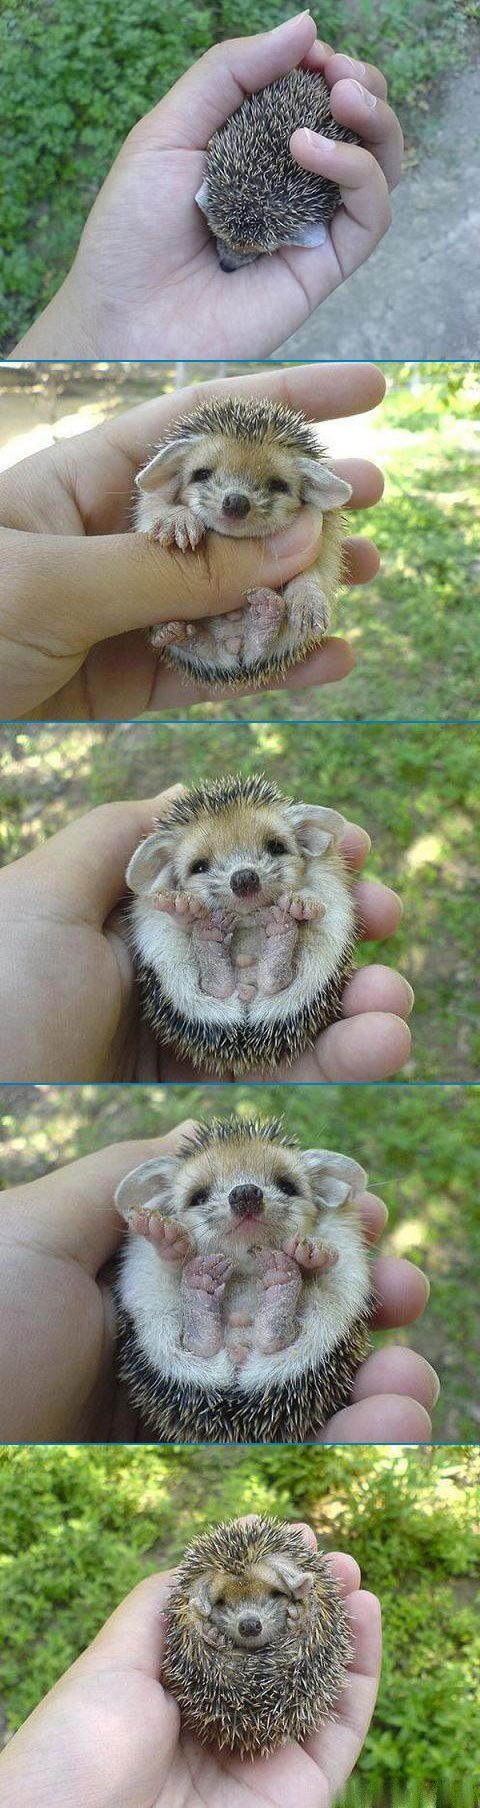 Baby hedgehog! Awww I want.